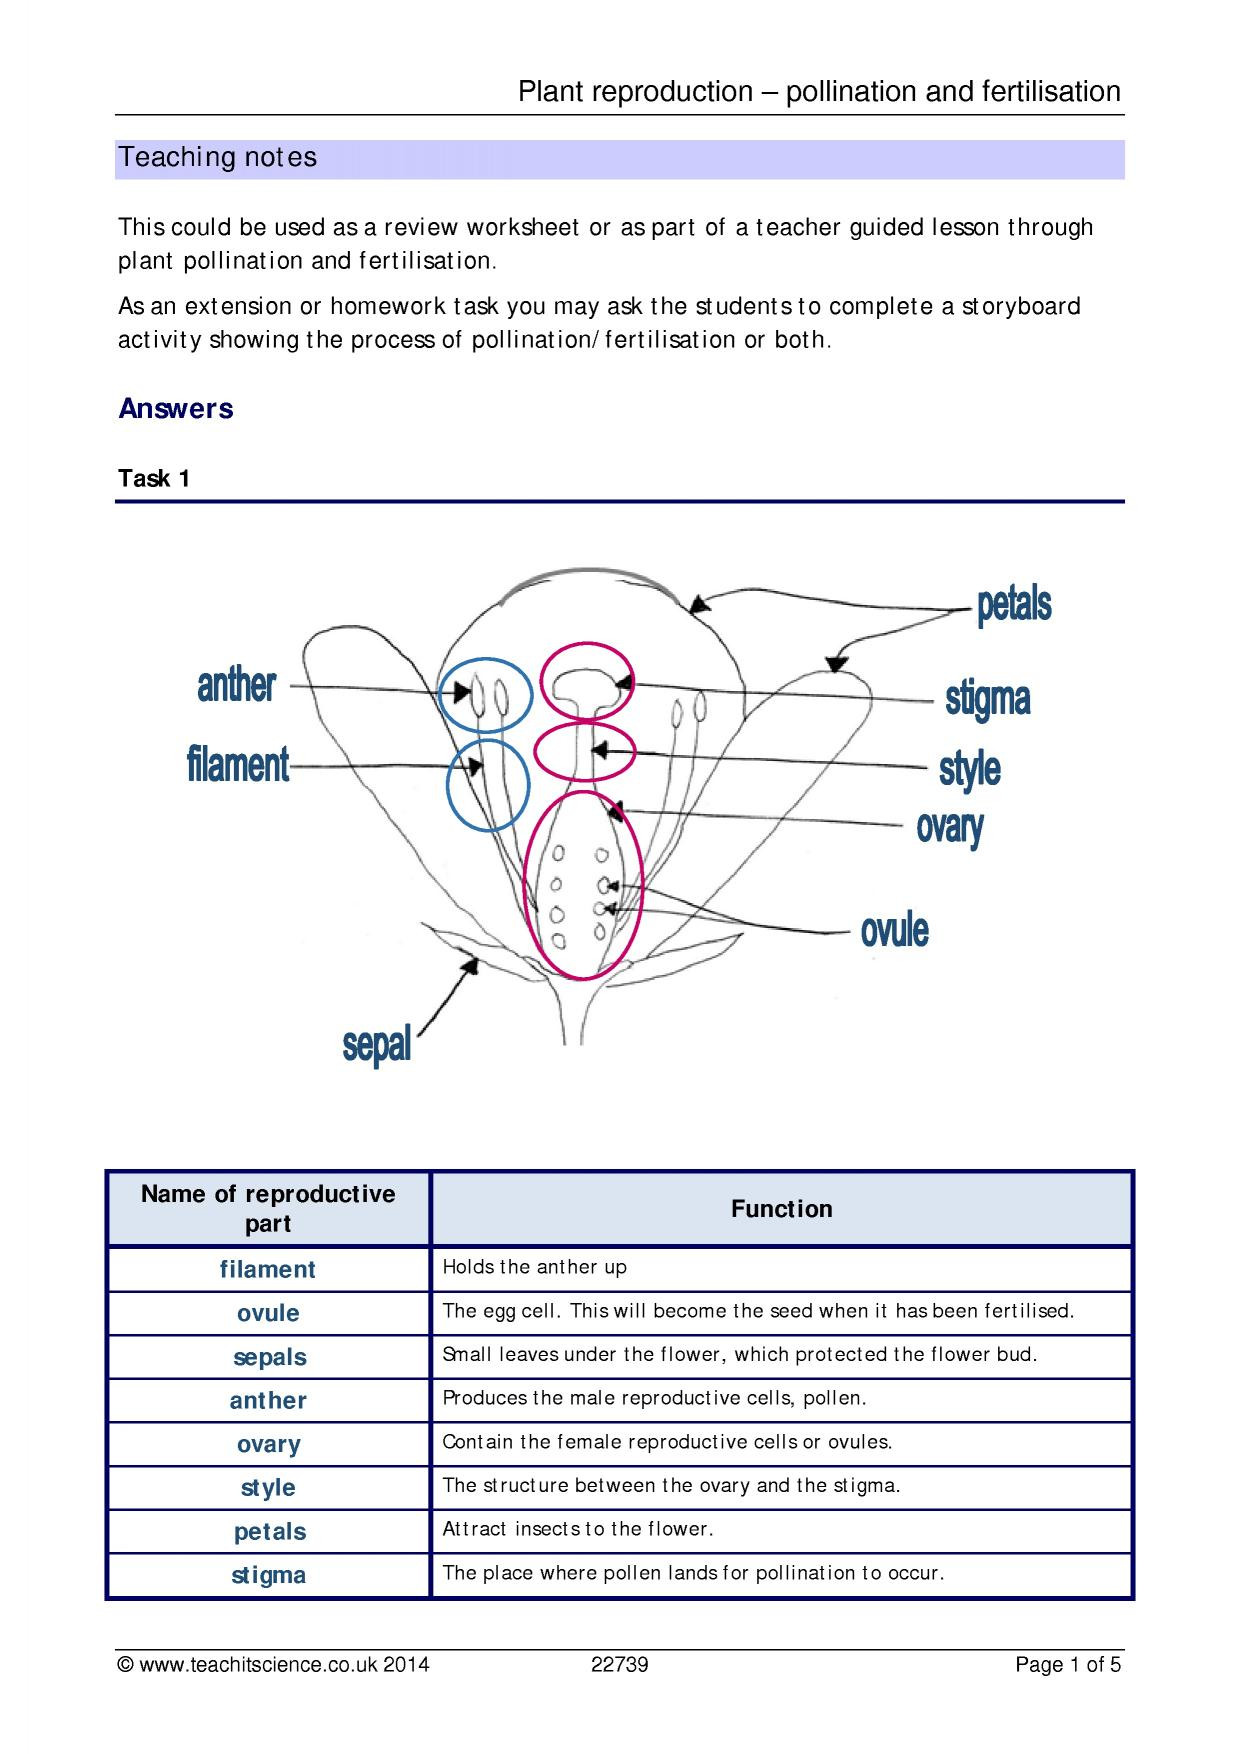 Plant Reproduction Worksheet Answers Plant Reproduction Pollination and Fertilisation – Teachit